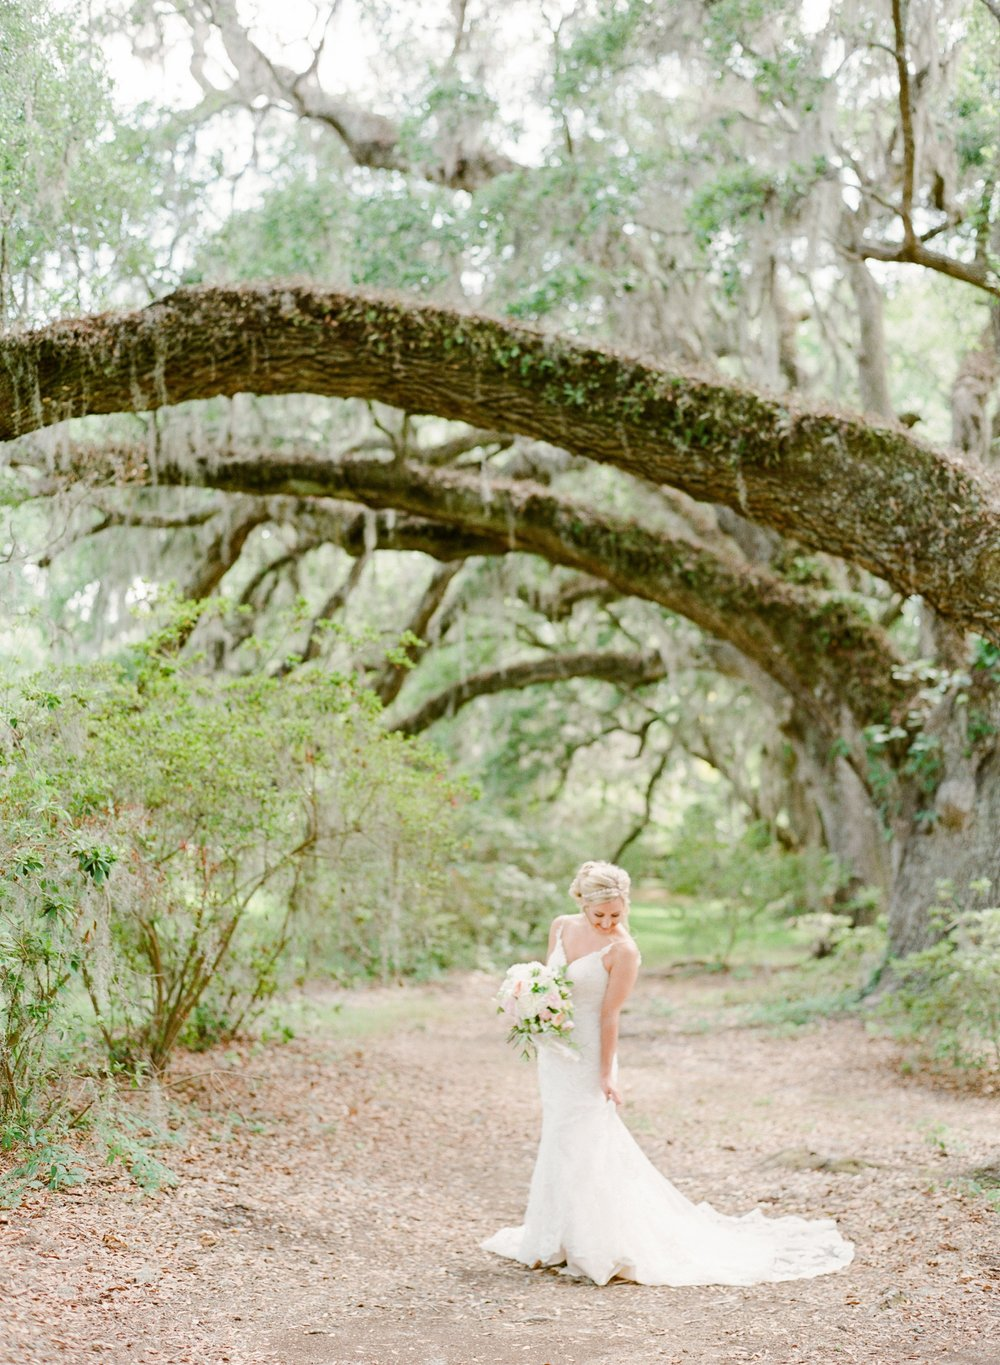 Magnolia-Plantation-Bride-Groom-Photos_0008.jpg